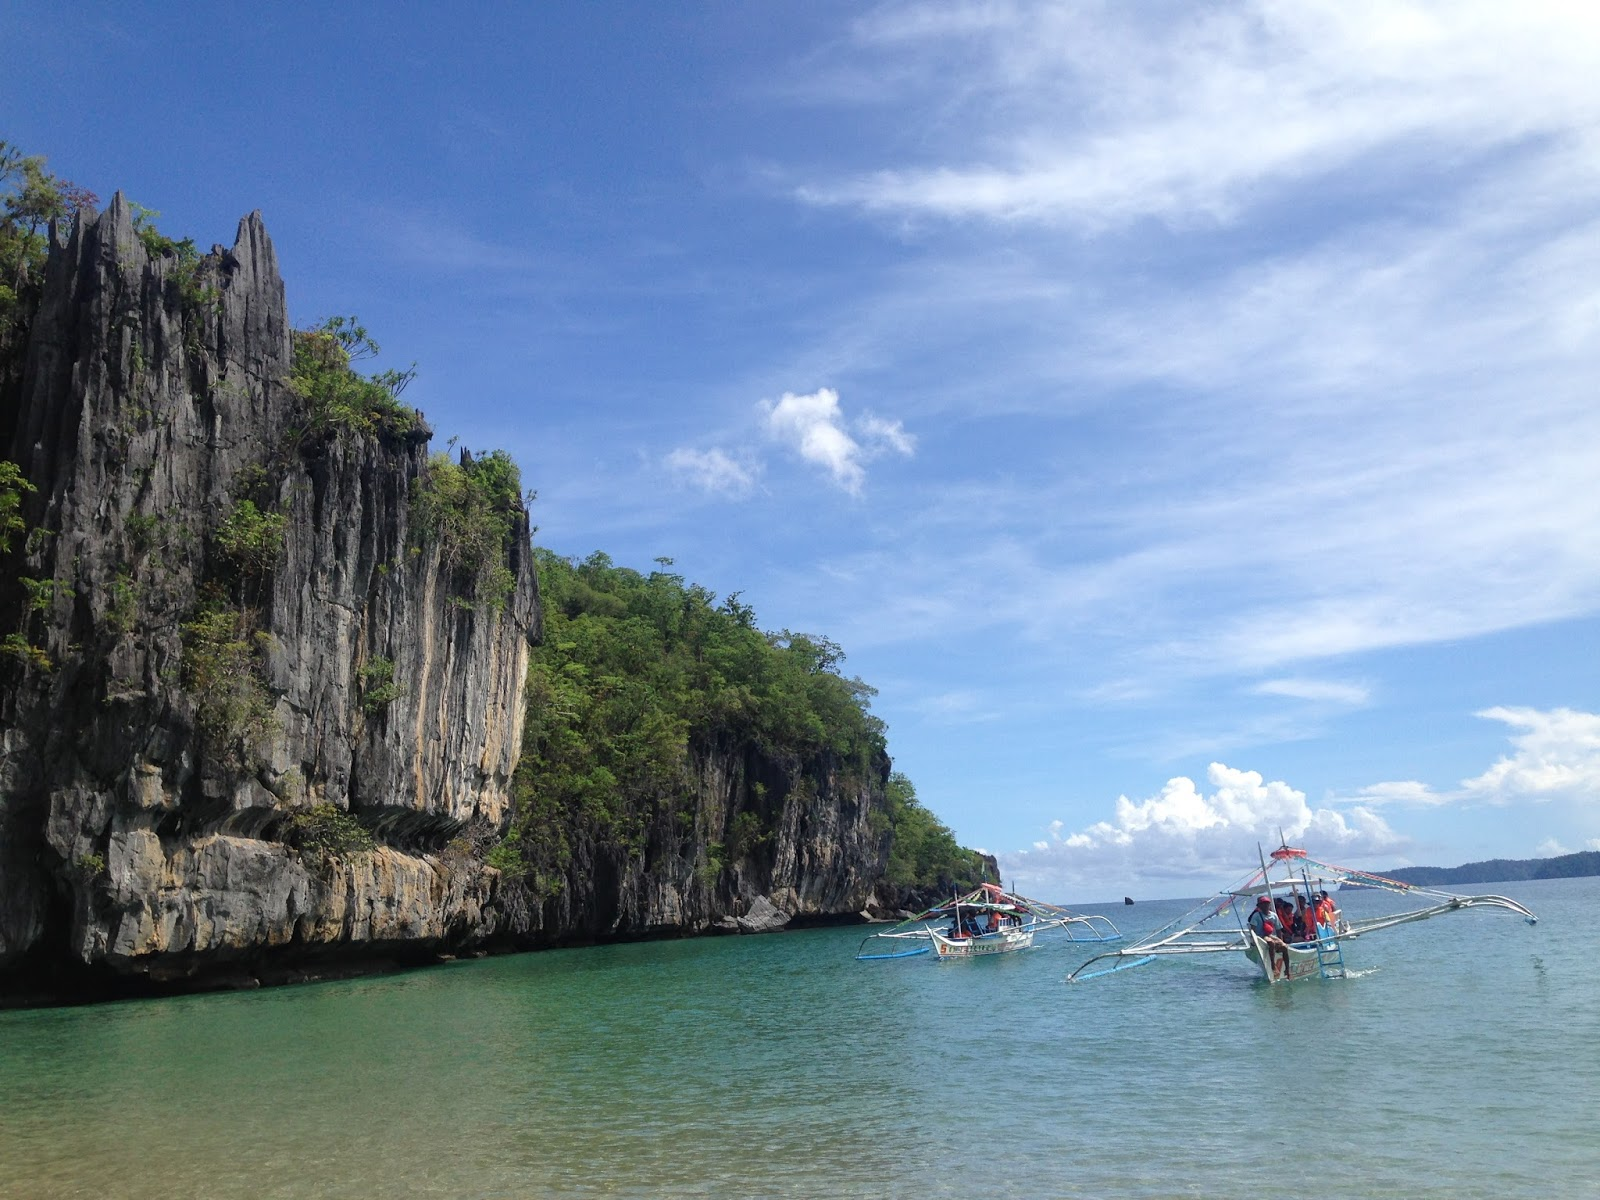 View from the Underground River entrance, Palawan